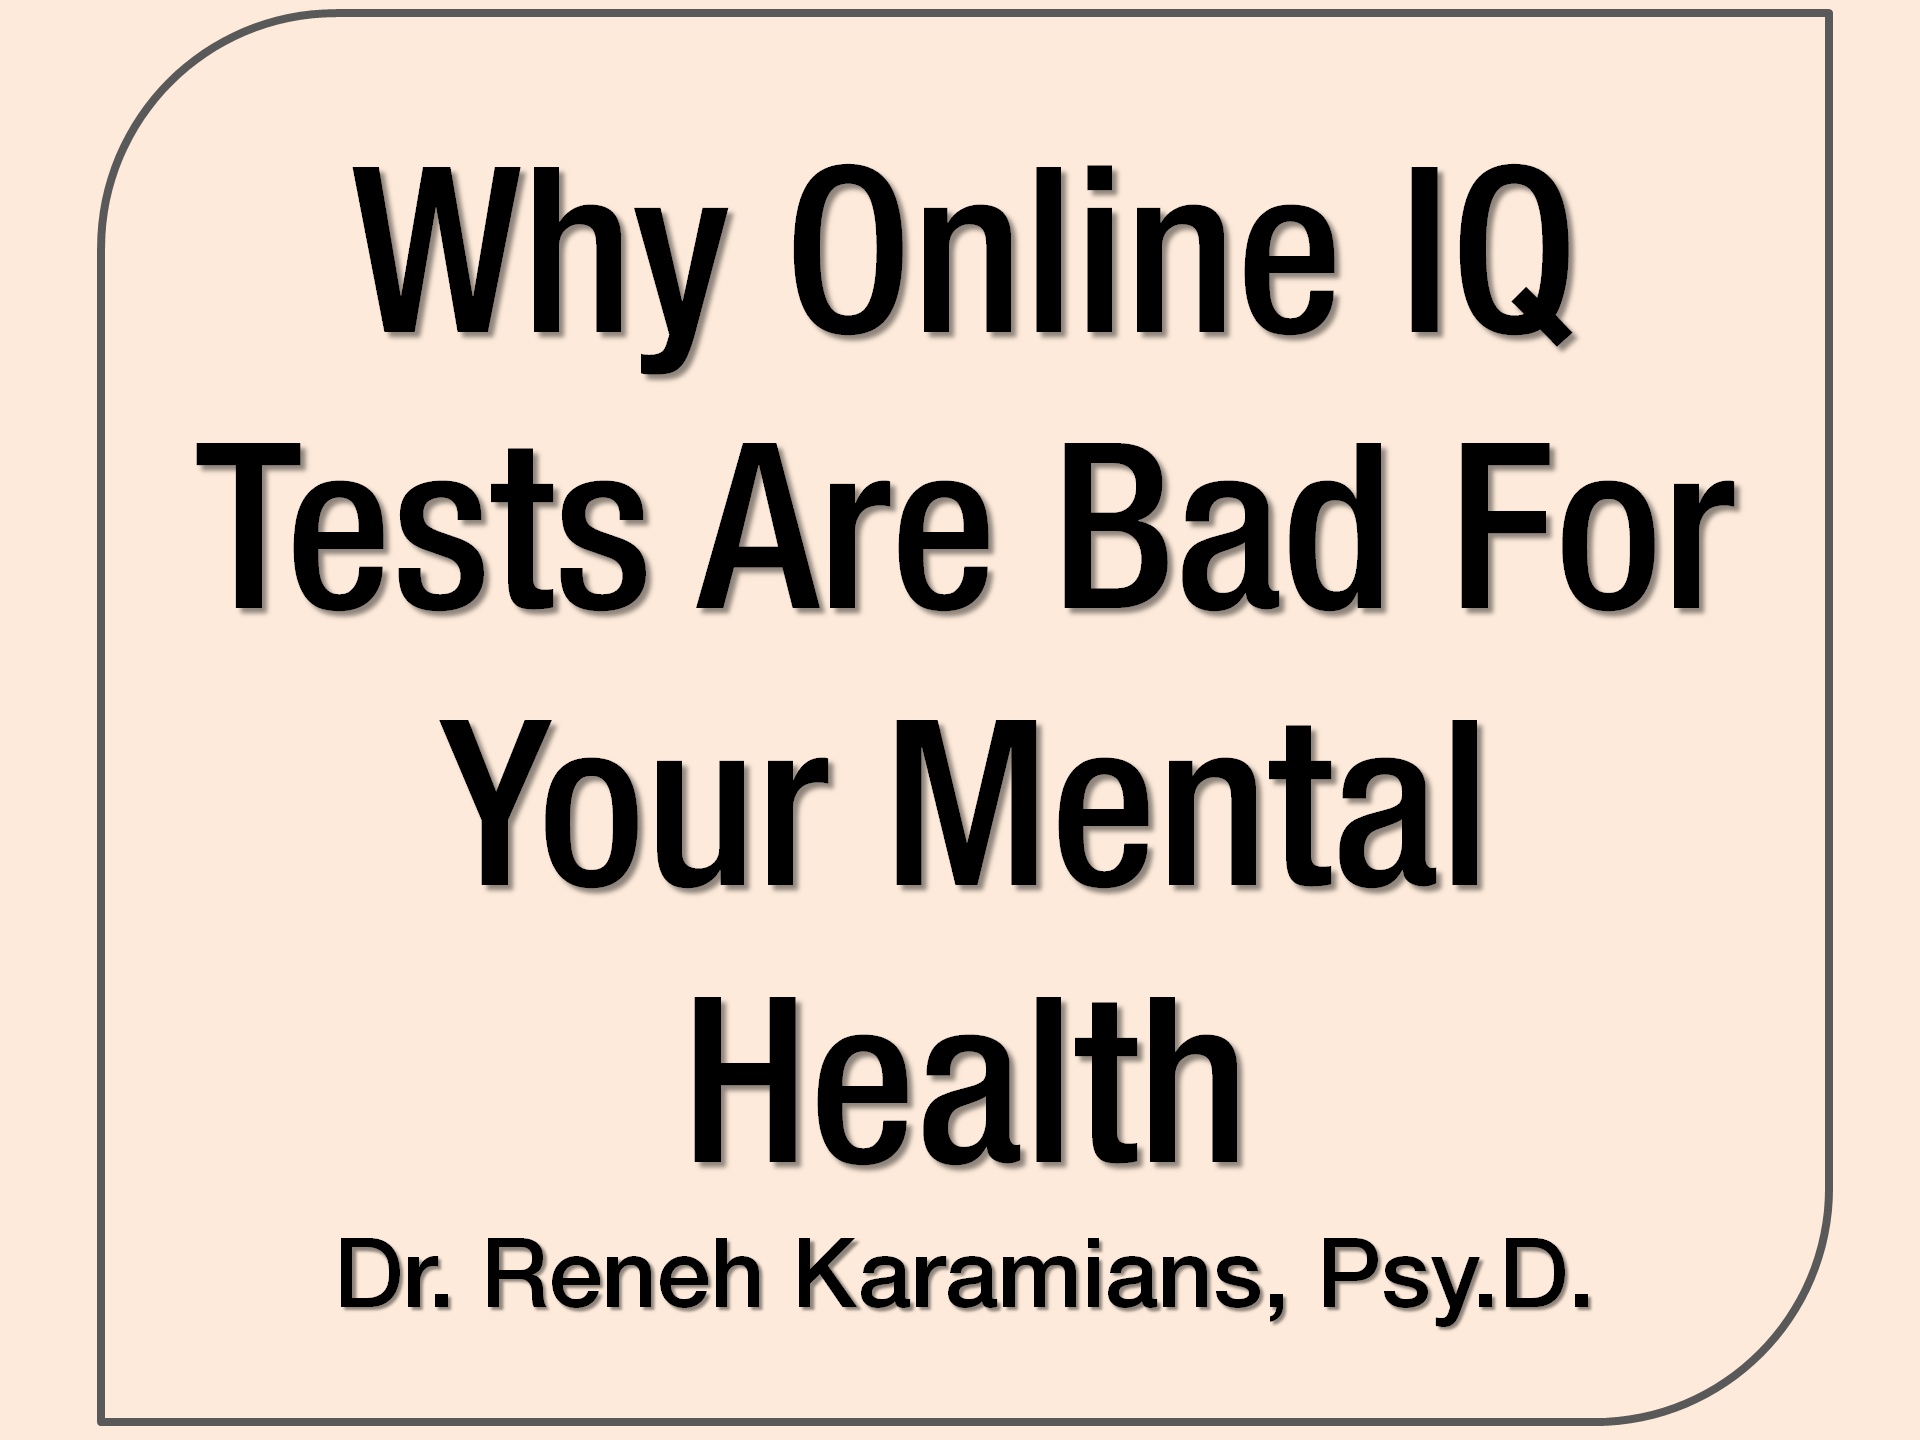 Why Online Iq Tests Are Bad For Your Mental Health Article By Dr